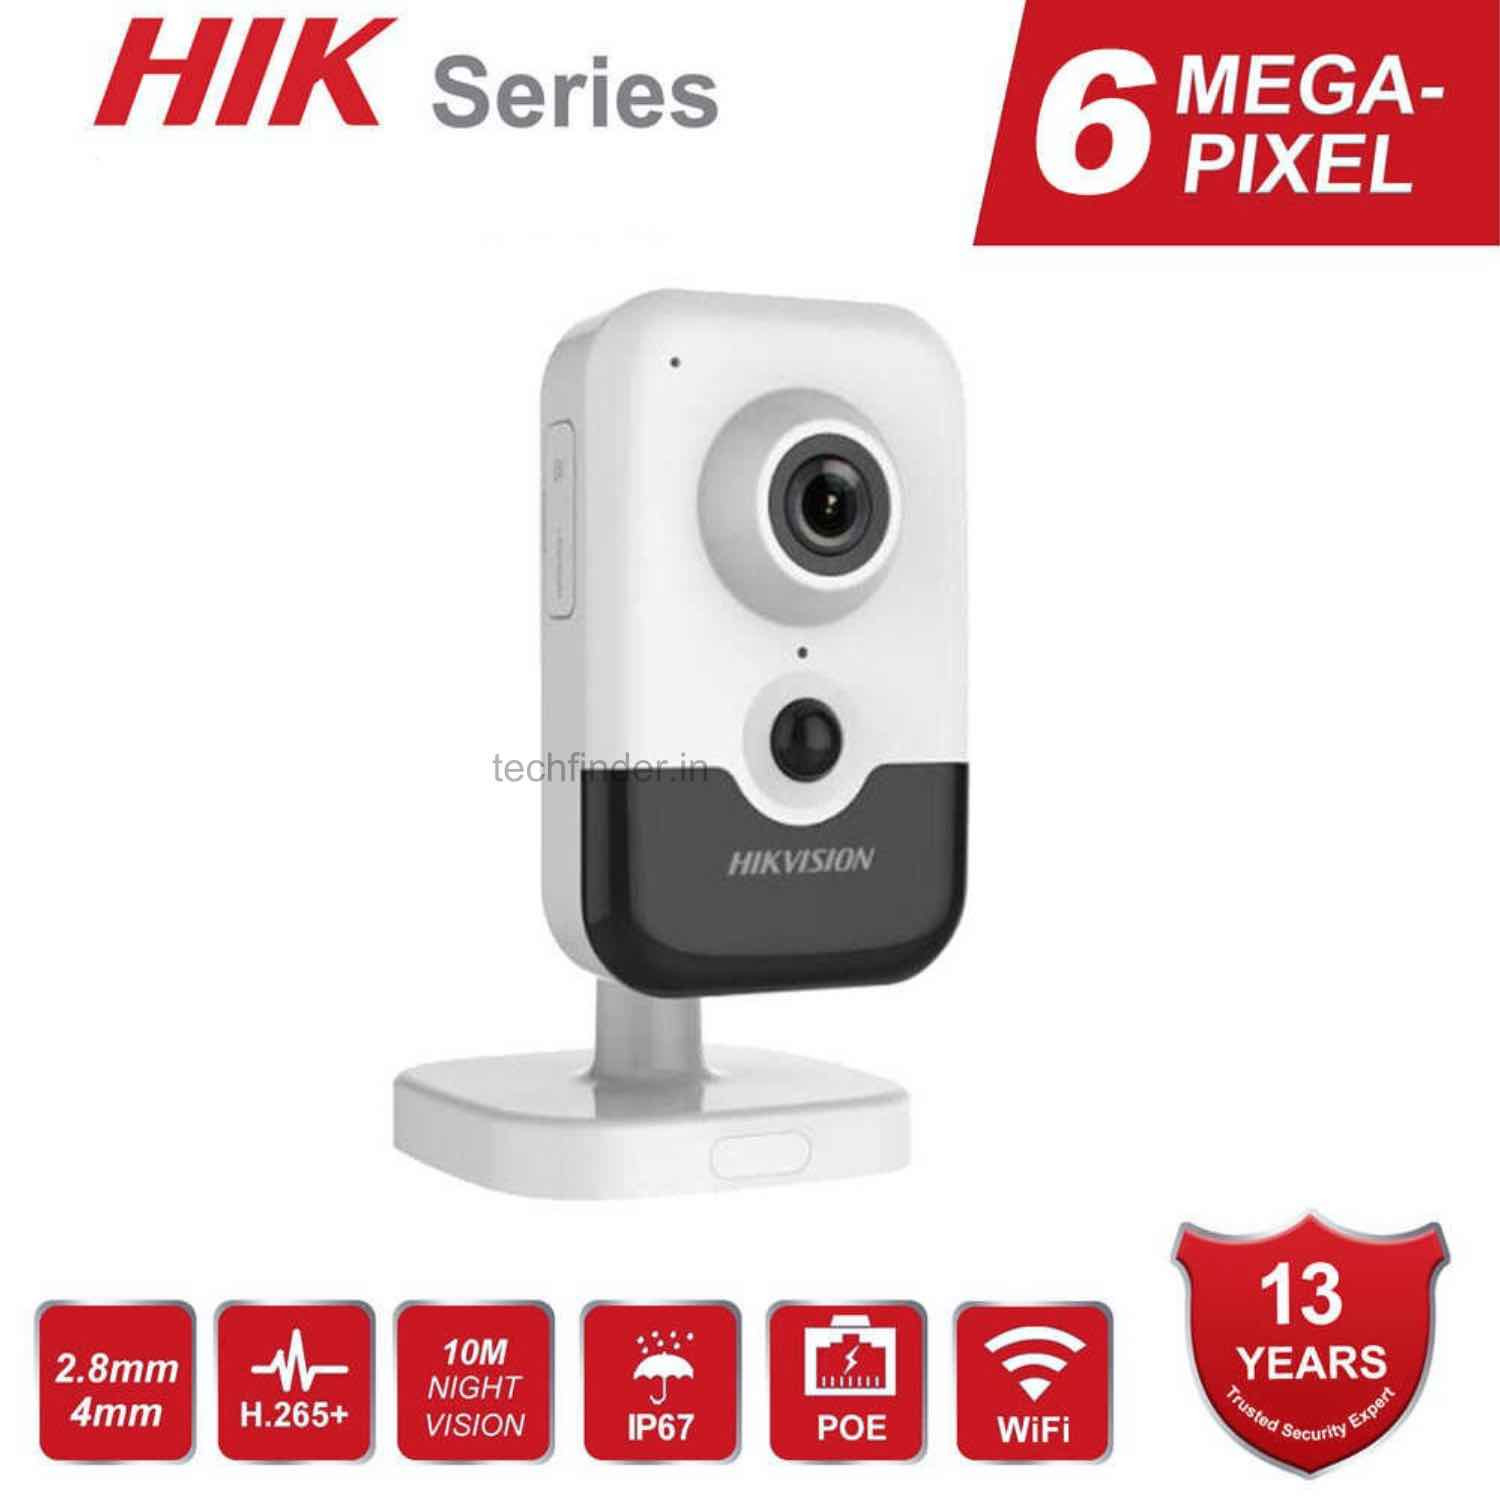 Hikvision DS-2CD2463G0-I(W) 6MP IR Wi-Fi Fixed Cube Network Ip Camera